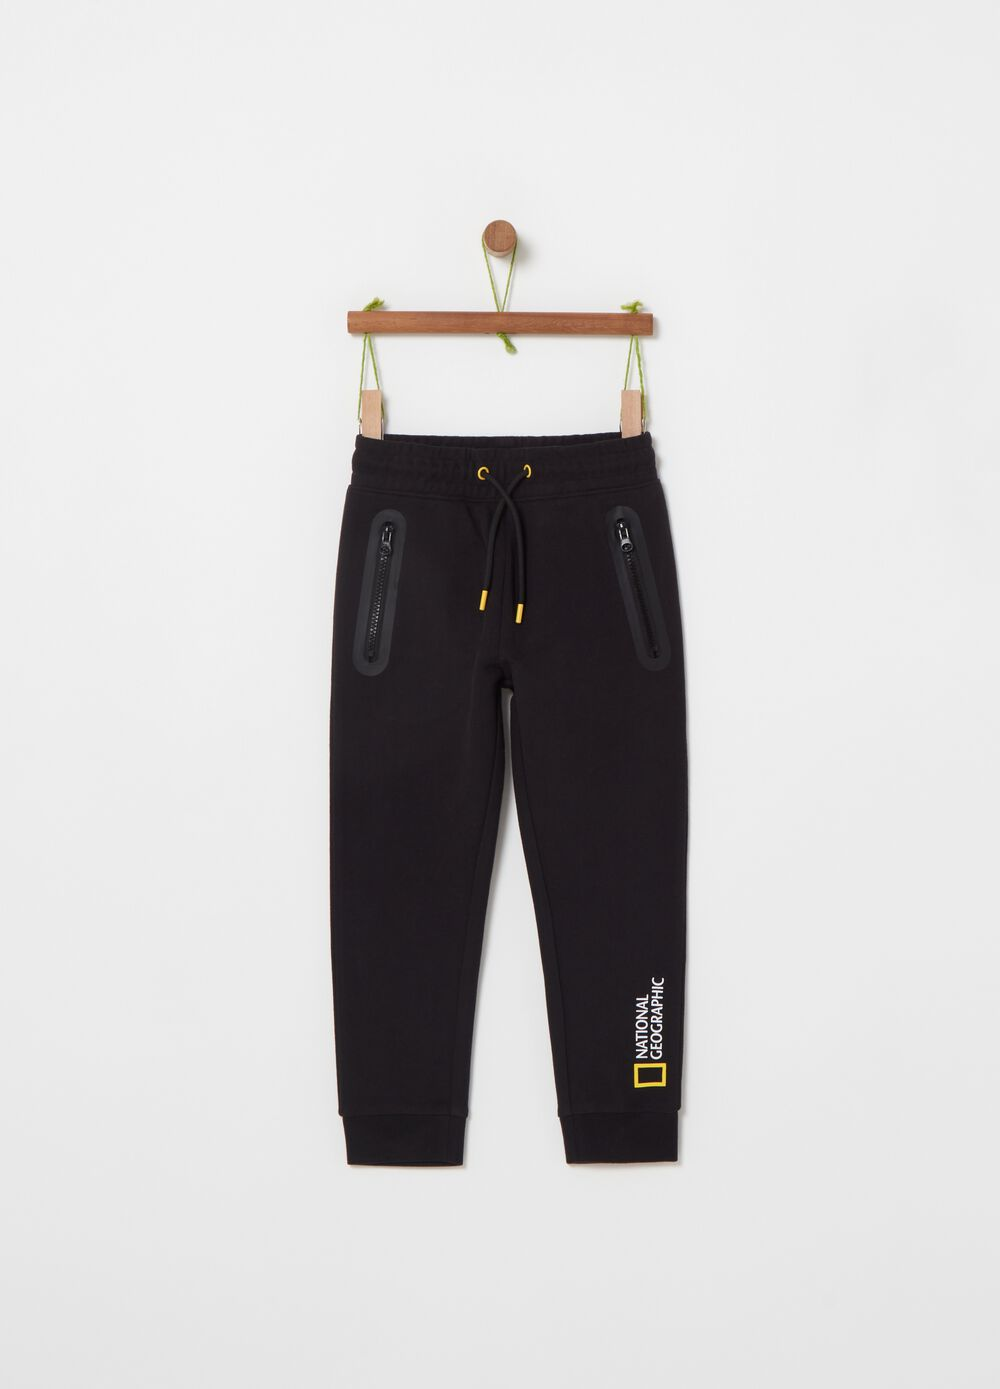 National Geographic joggers